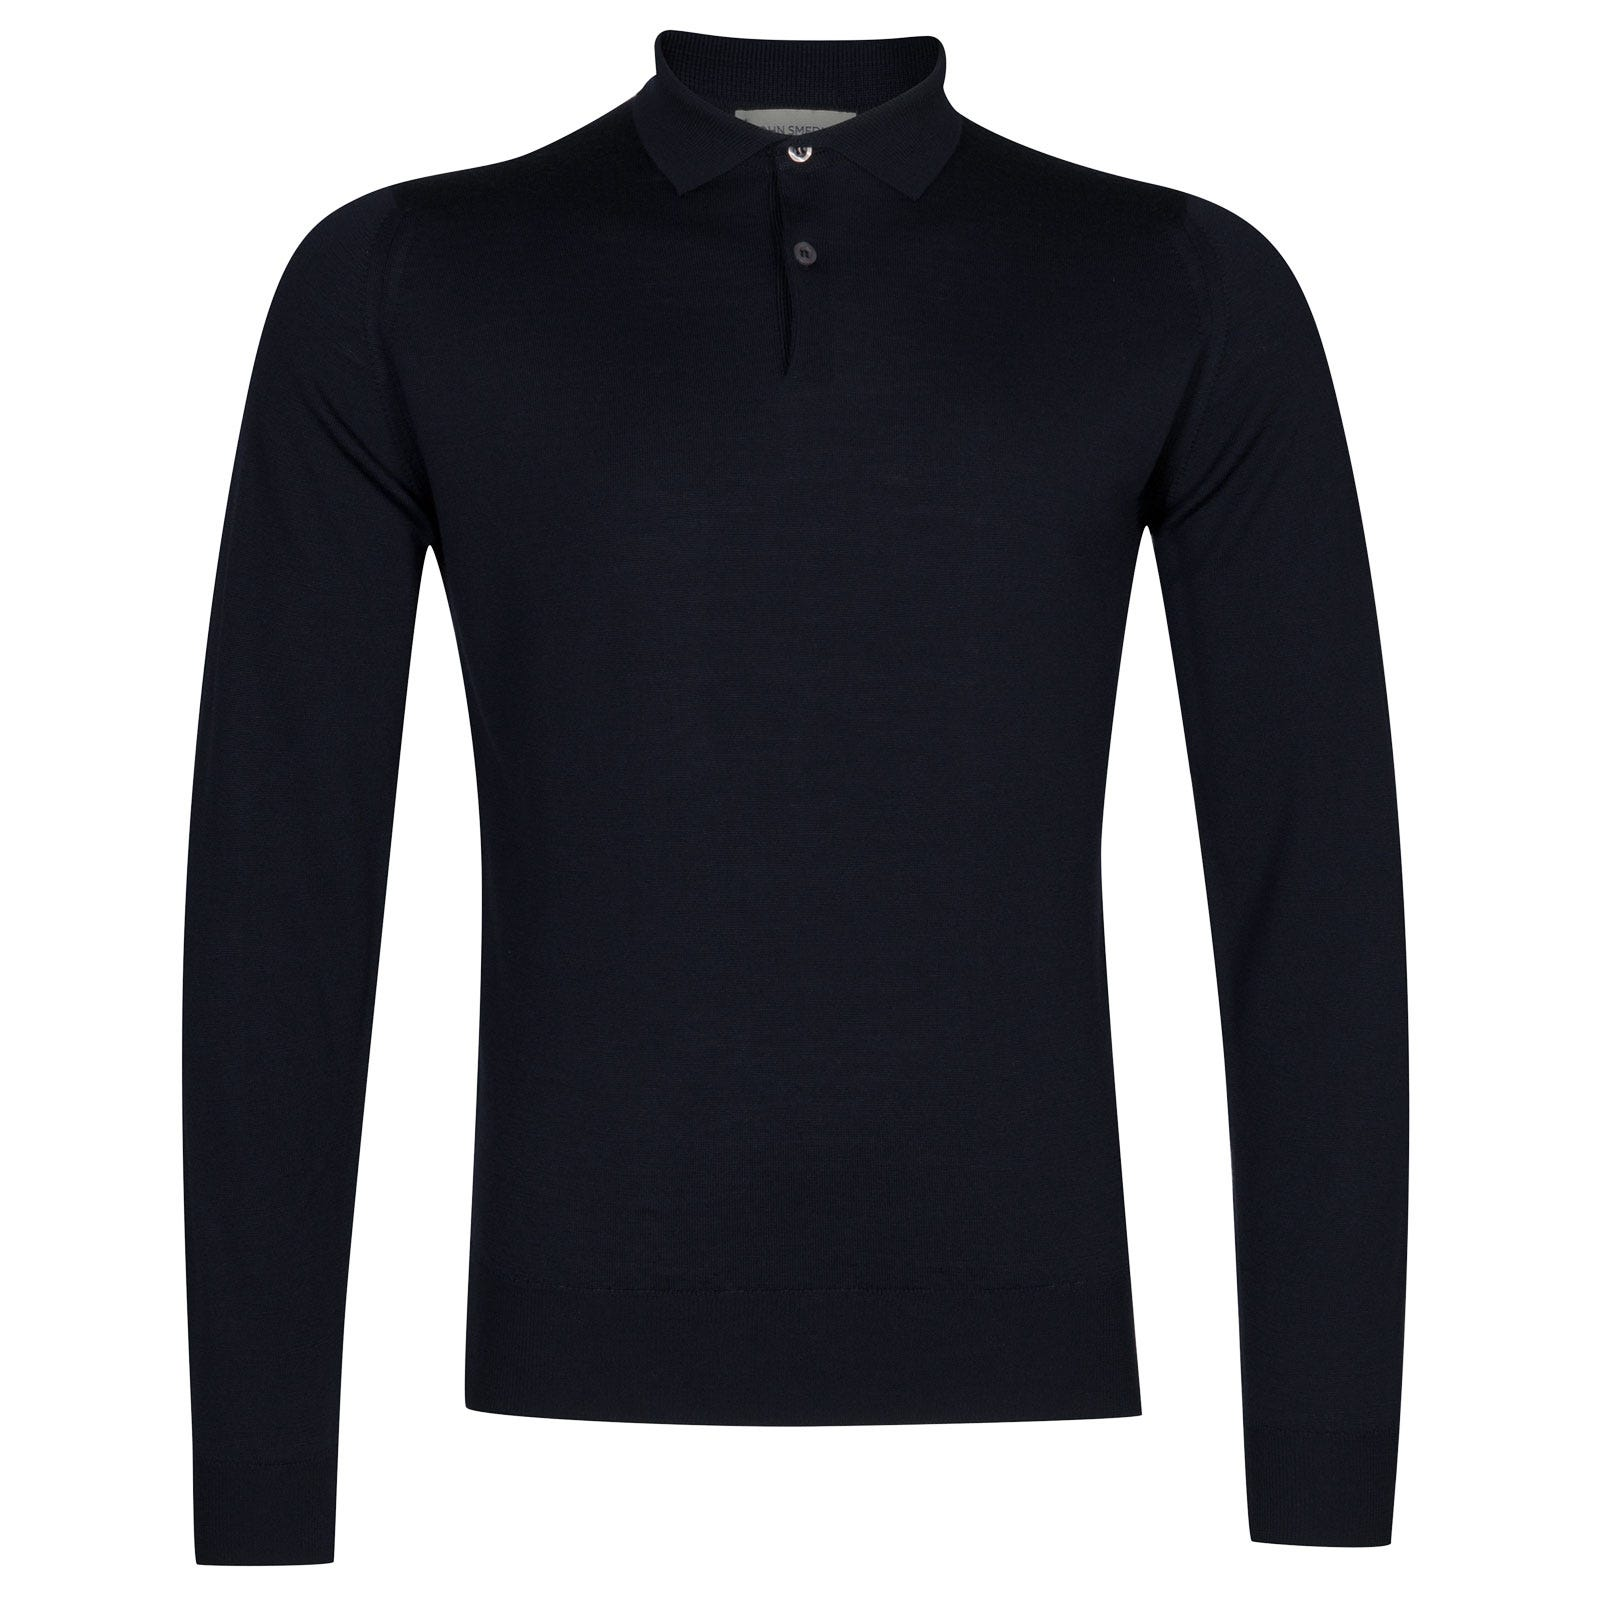 John Smedley garda Merino Wool Shirt in Midnight-XXL